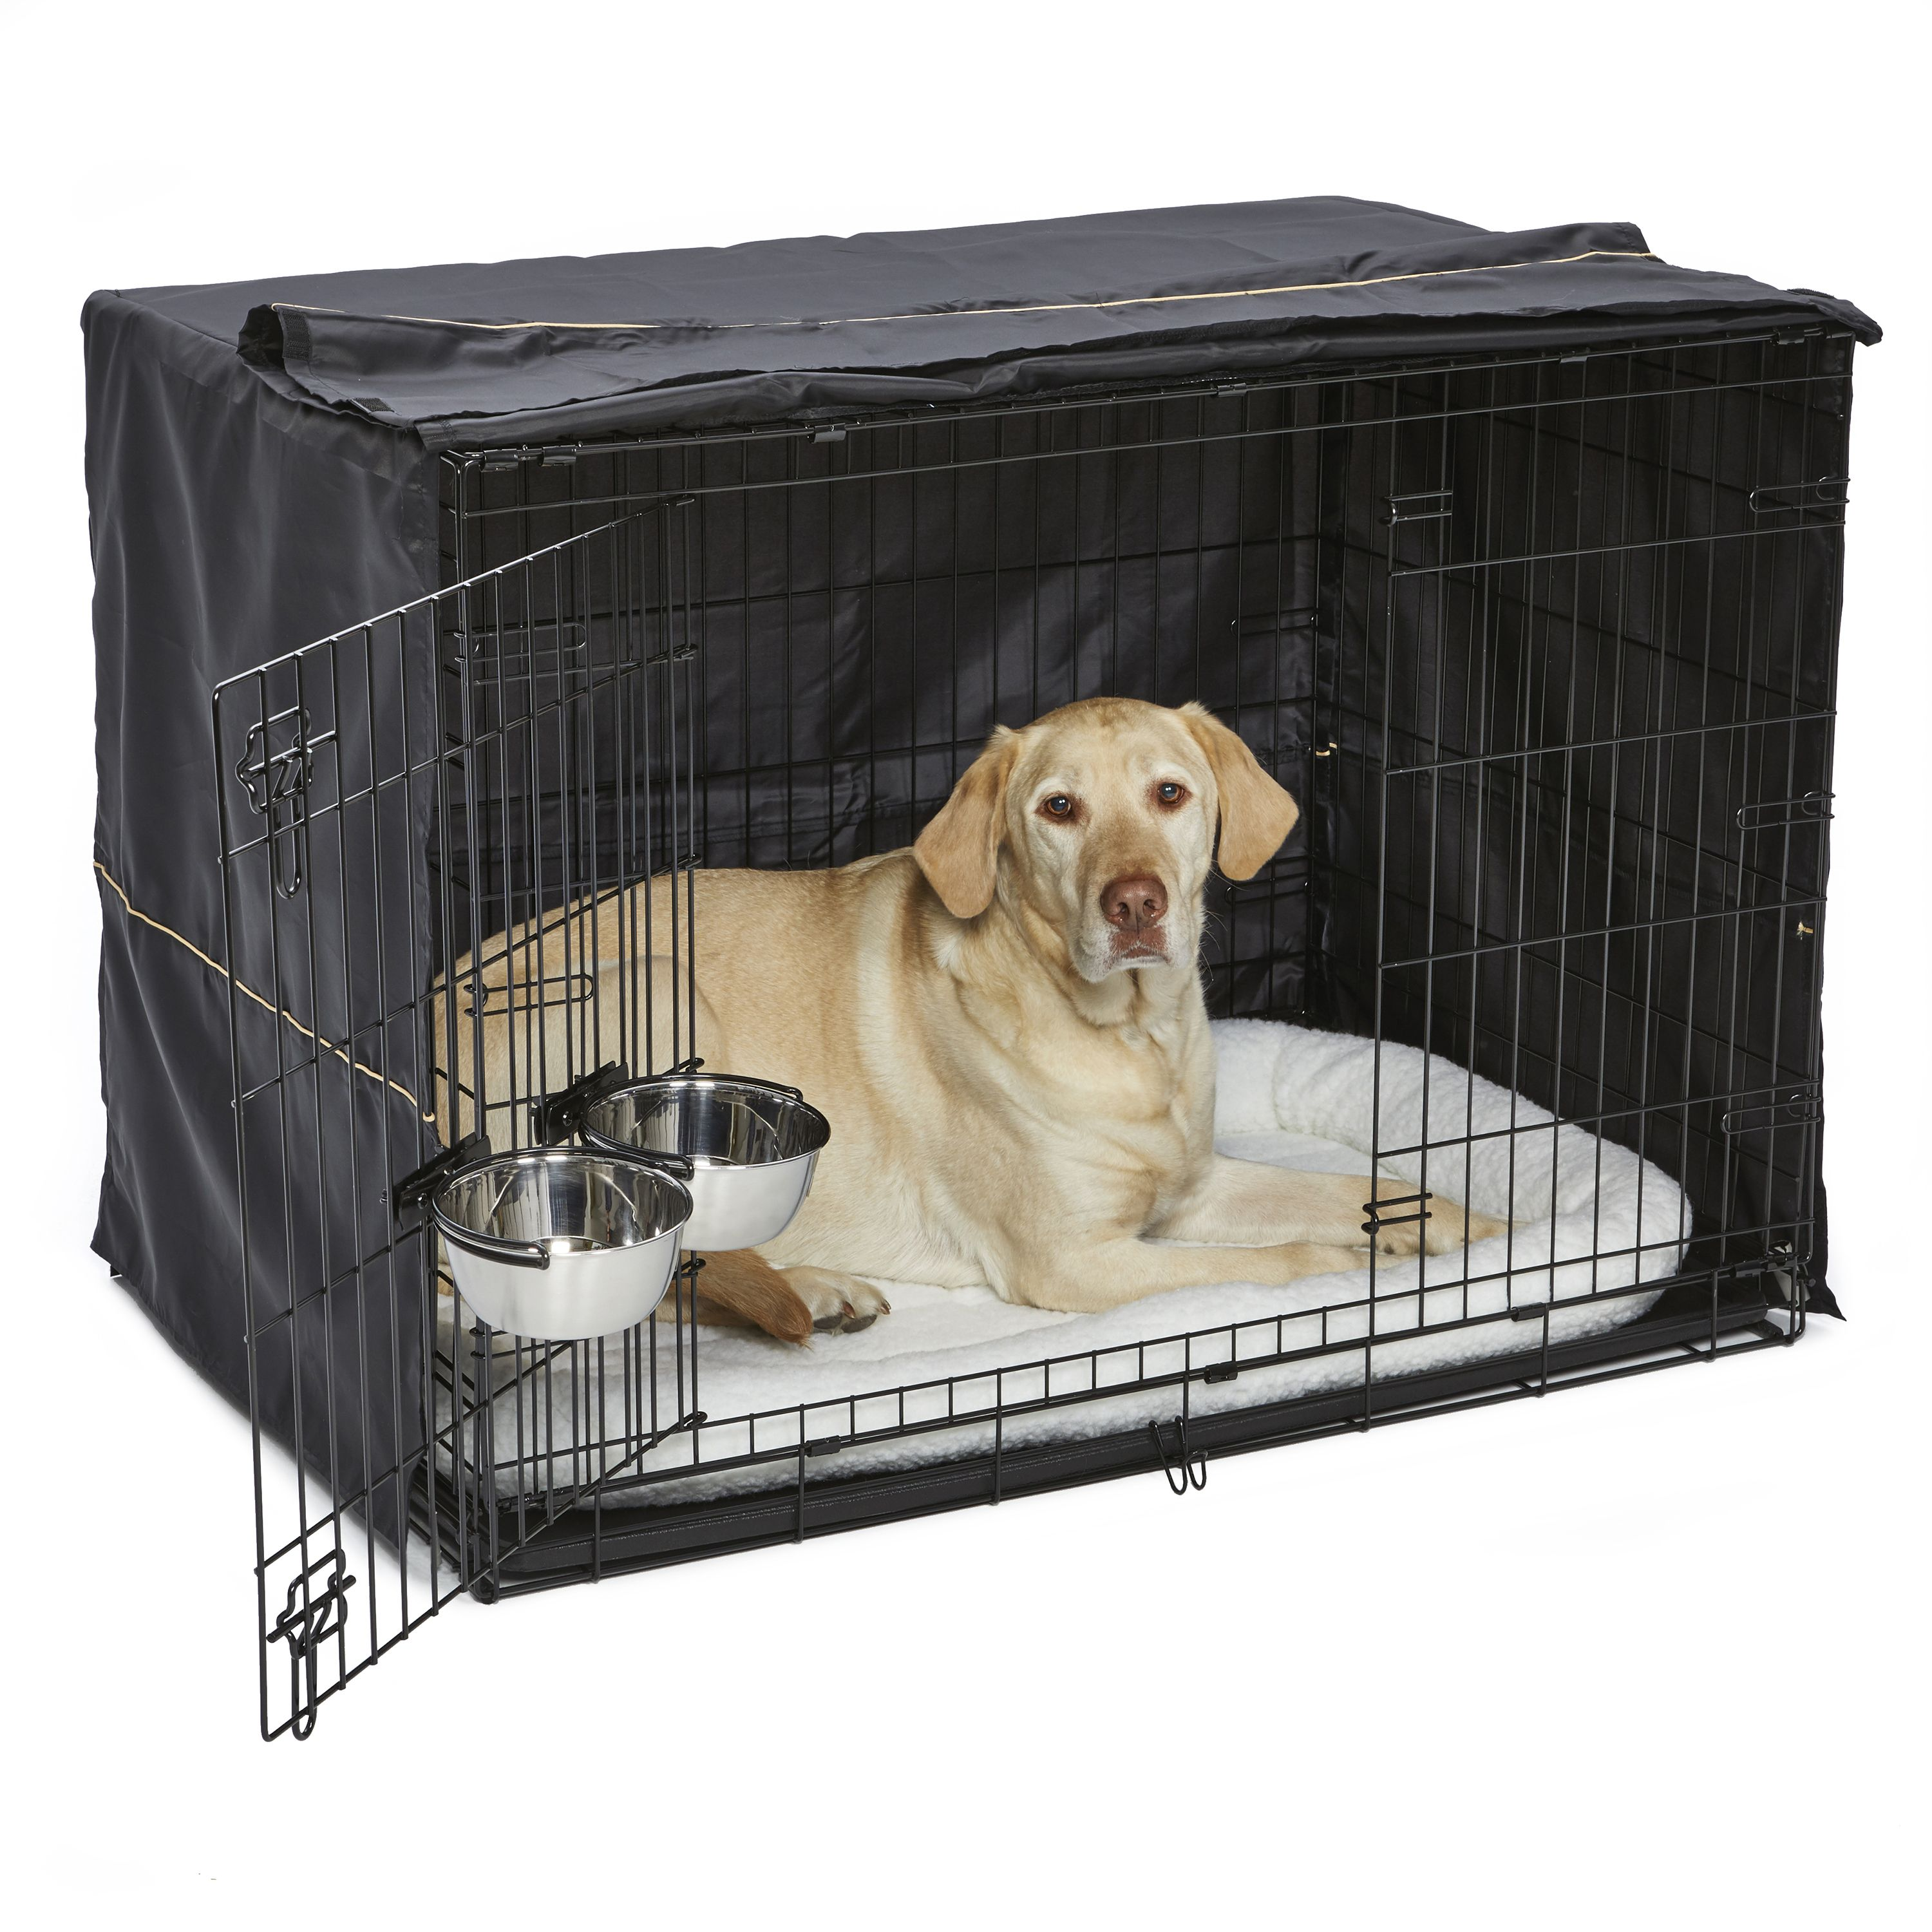 Midwest Dog Crate Starter Kit 42 2 Door Icrate Pet Bed Crate Cover 2 Pet Bowls Ideal For Large Dog Breeds Walmart Com Dog Crate Cover Large Dog Crate Large Dog Breeds